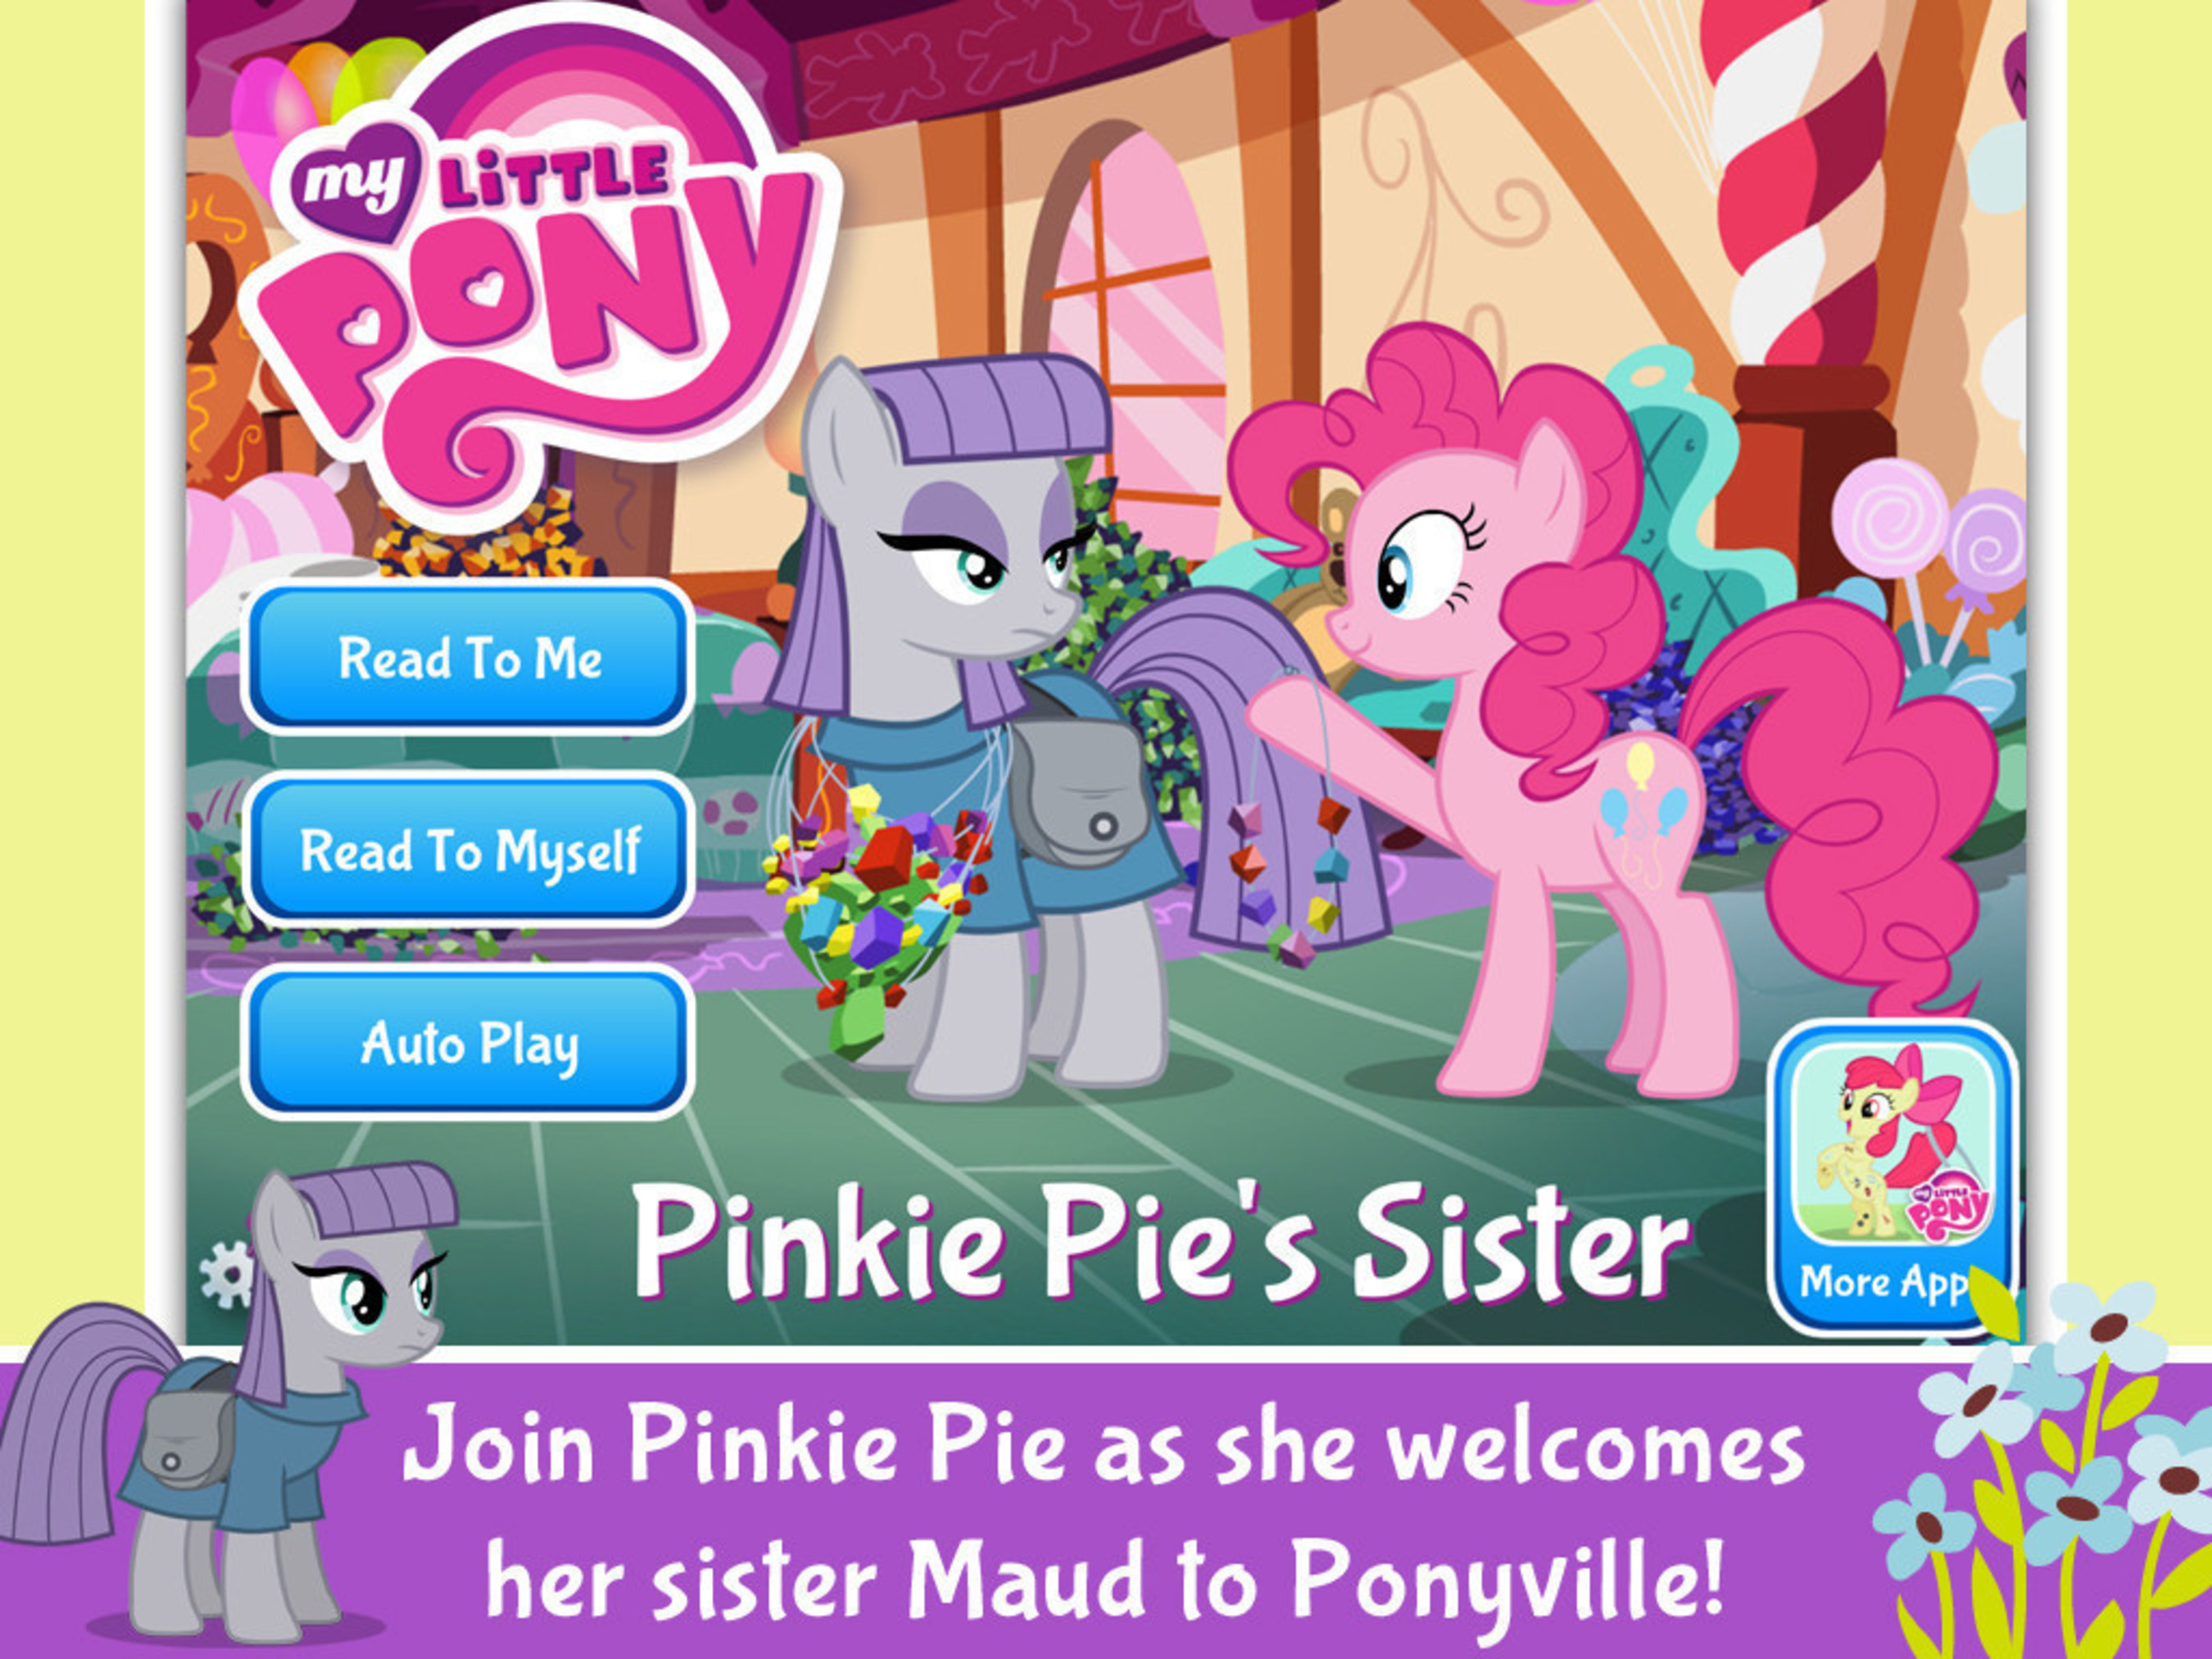 The Ponies Celebrate Differences in the Latest Storybook App MY LITTLE PONY: PINKIE PIE'S SISTER from Hasbro and PlayDate Digital